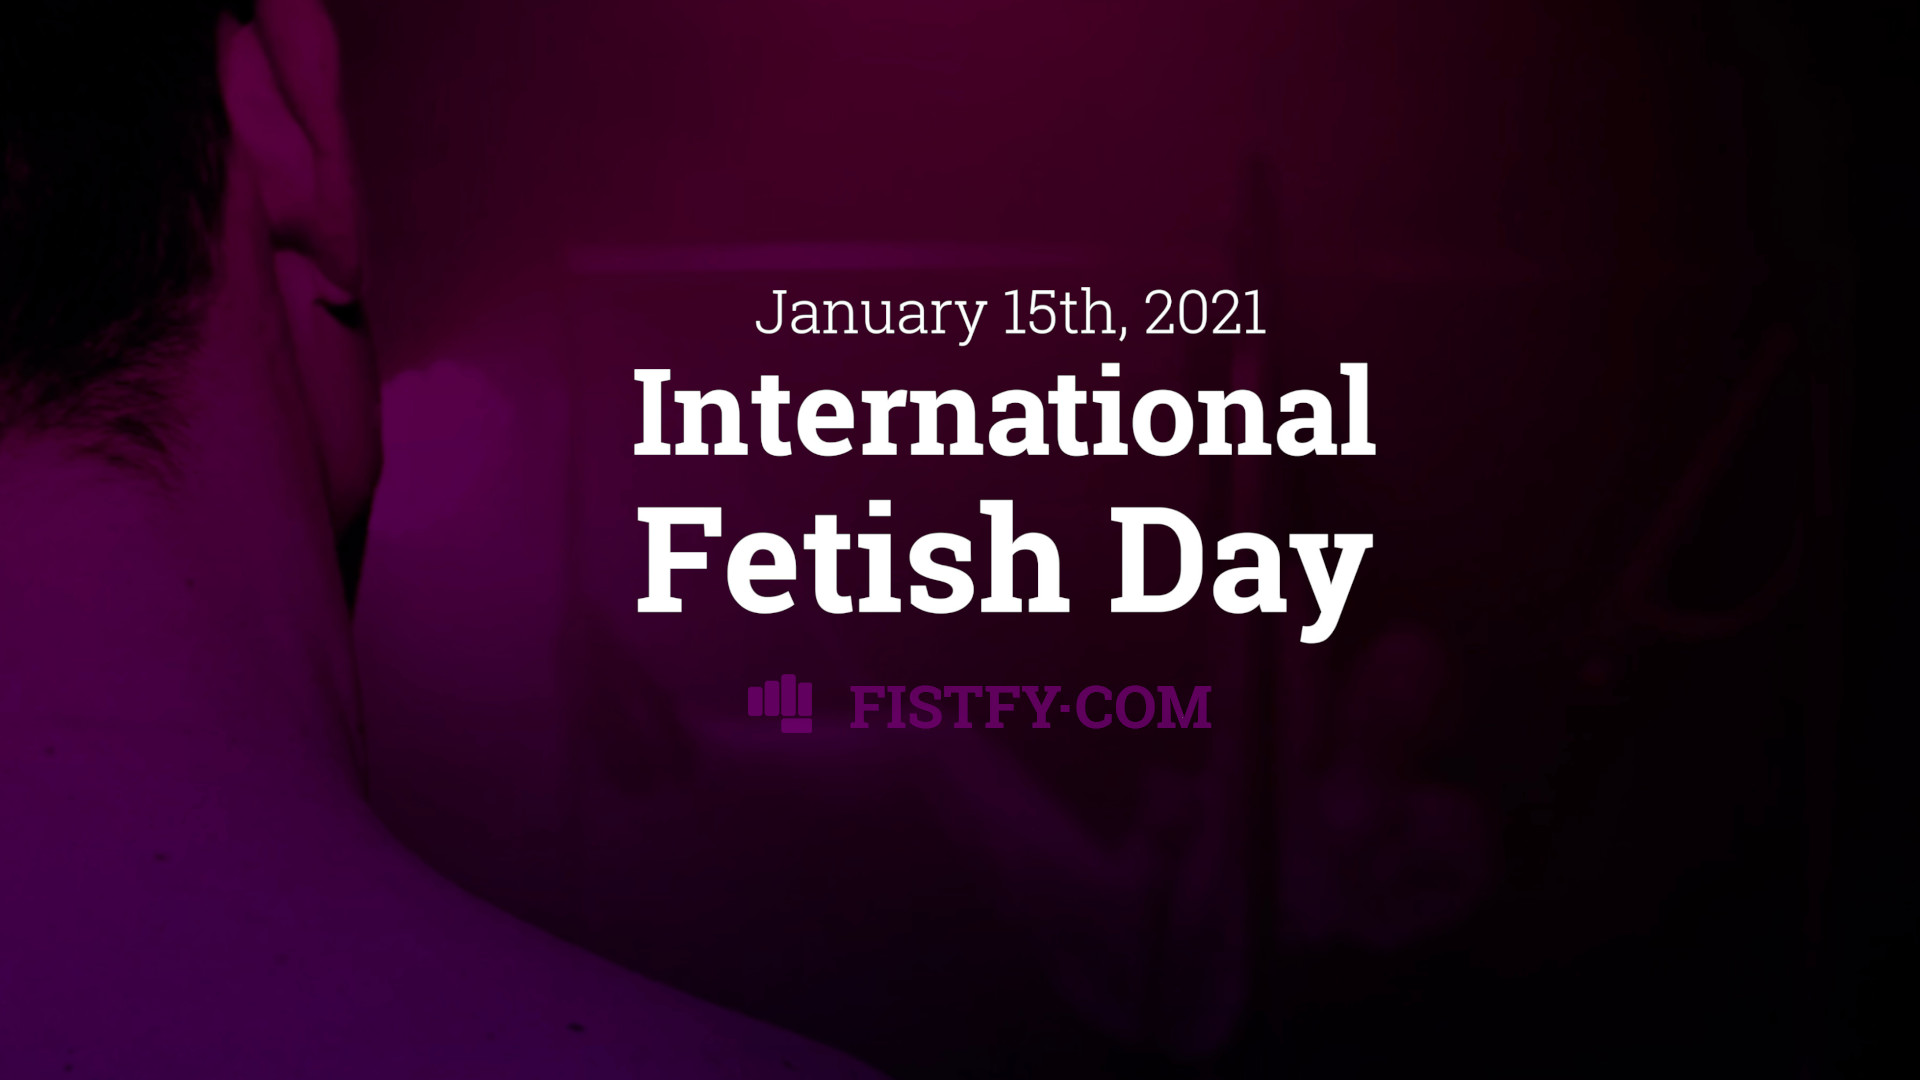 International Fetish Day